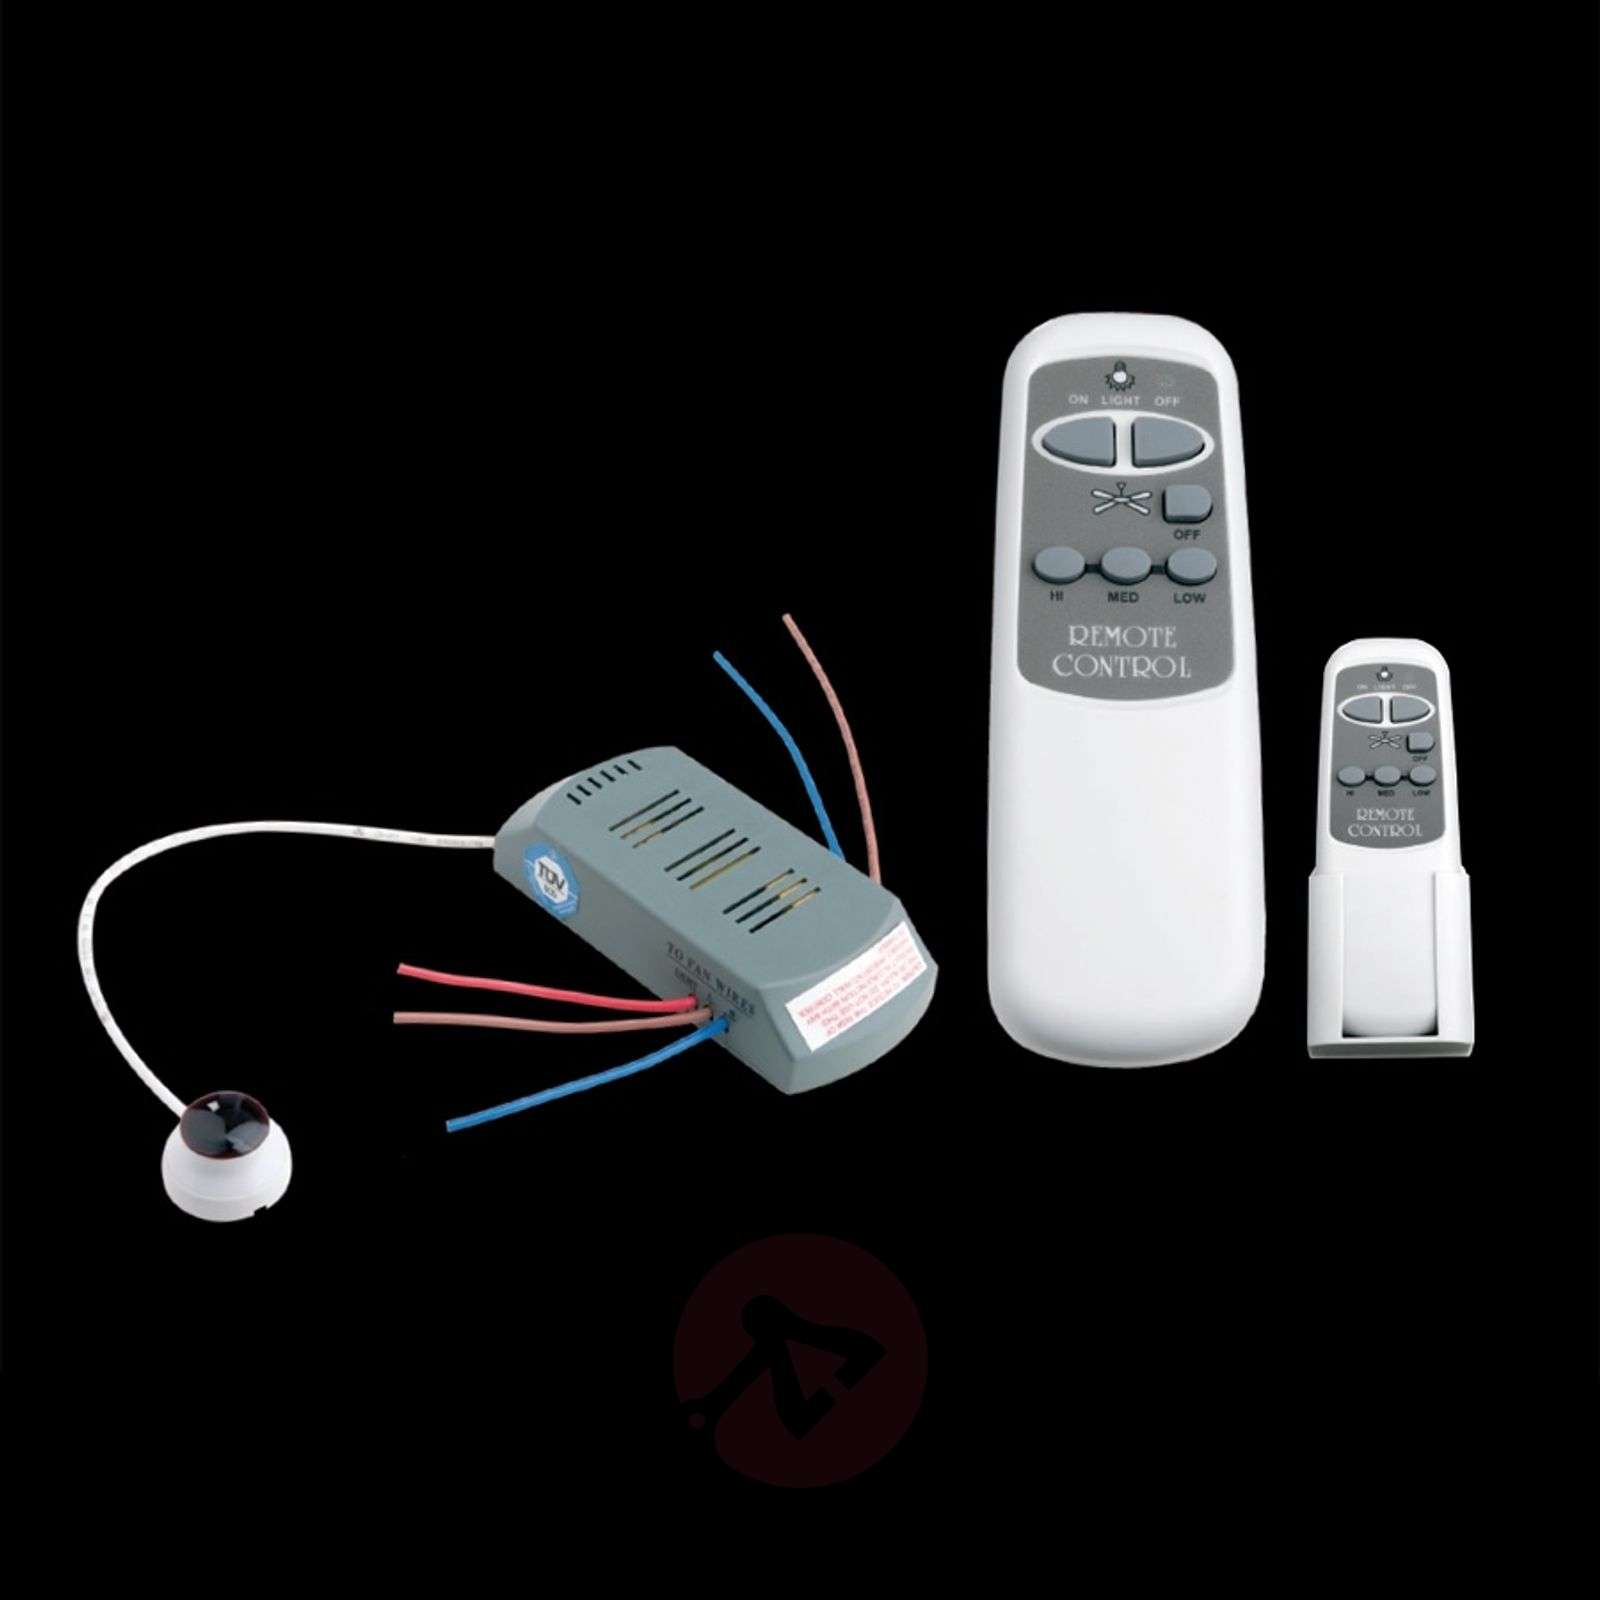 Remote Control for Ceiling Fans-4014475-01